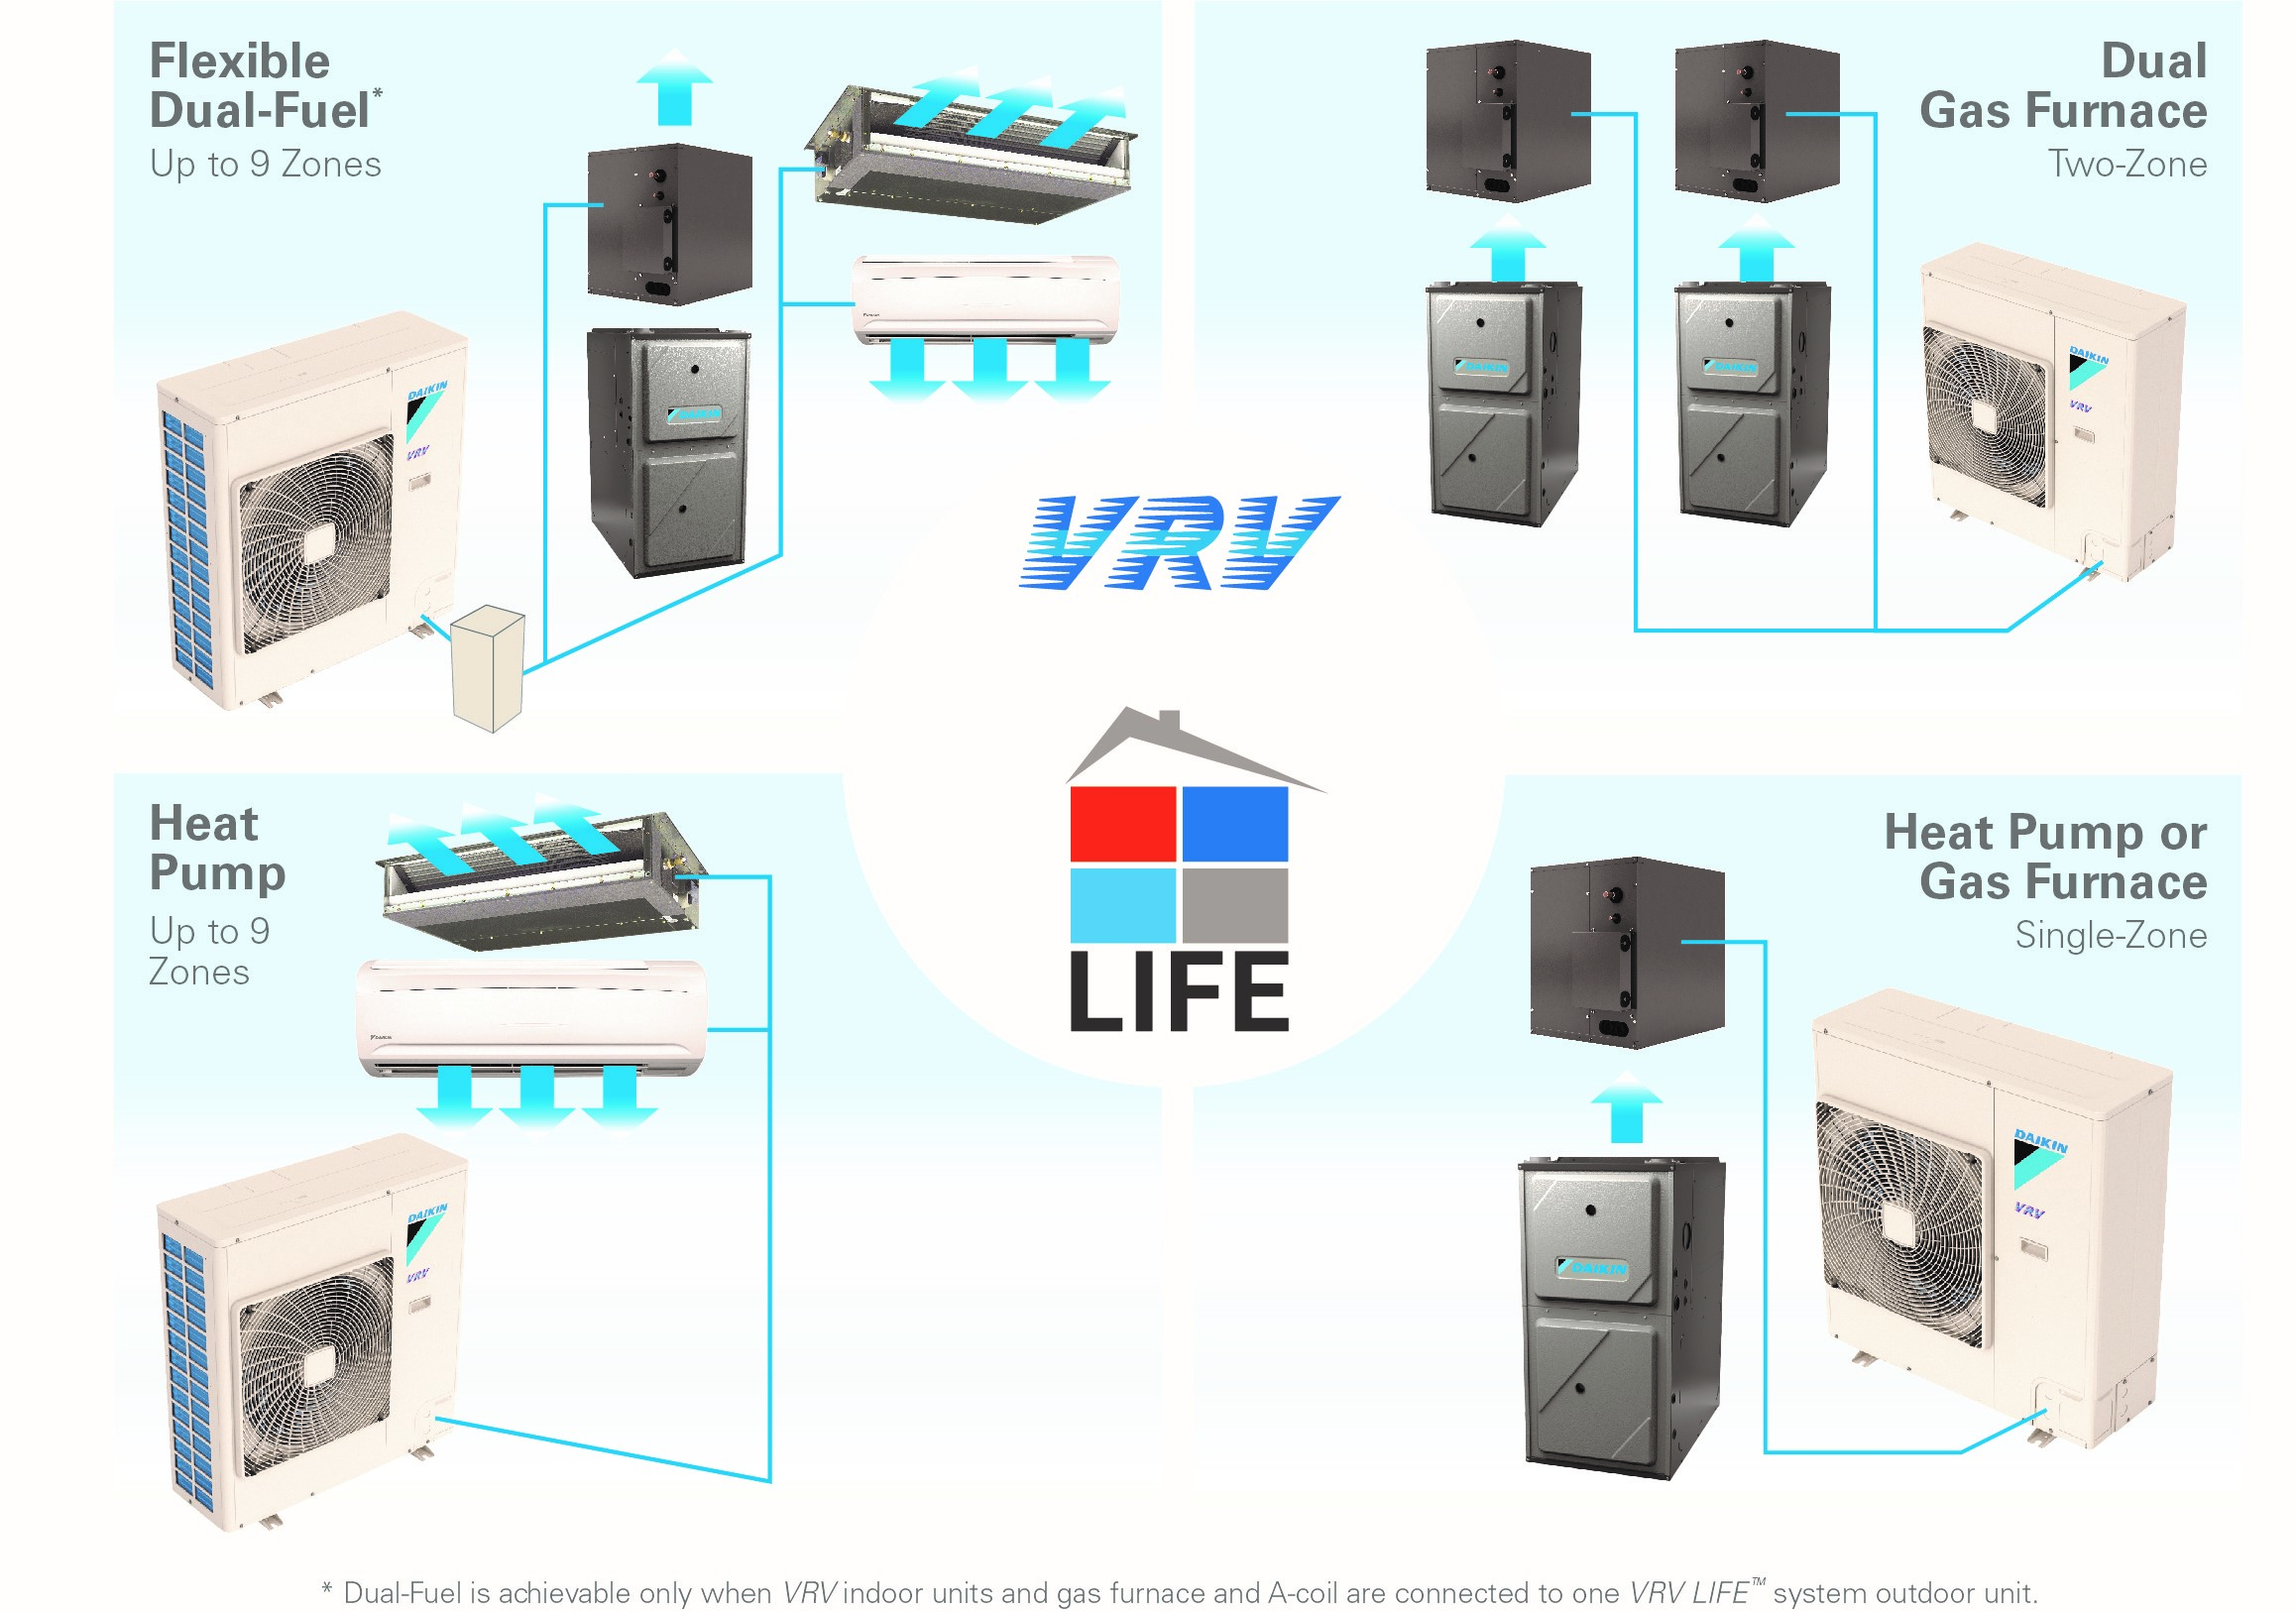 Daikin VRV Life Combines a High-Efficiency Furnace and Heat Pumps